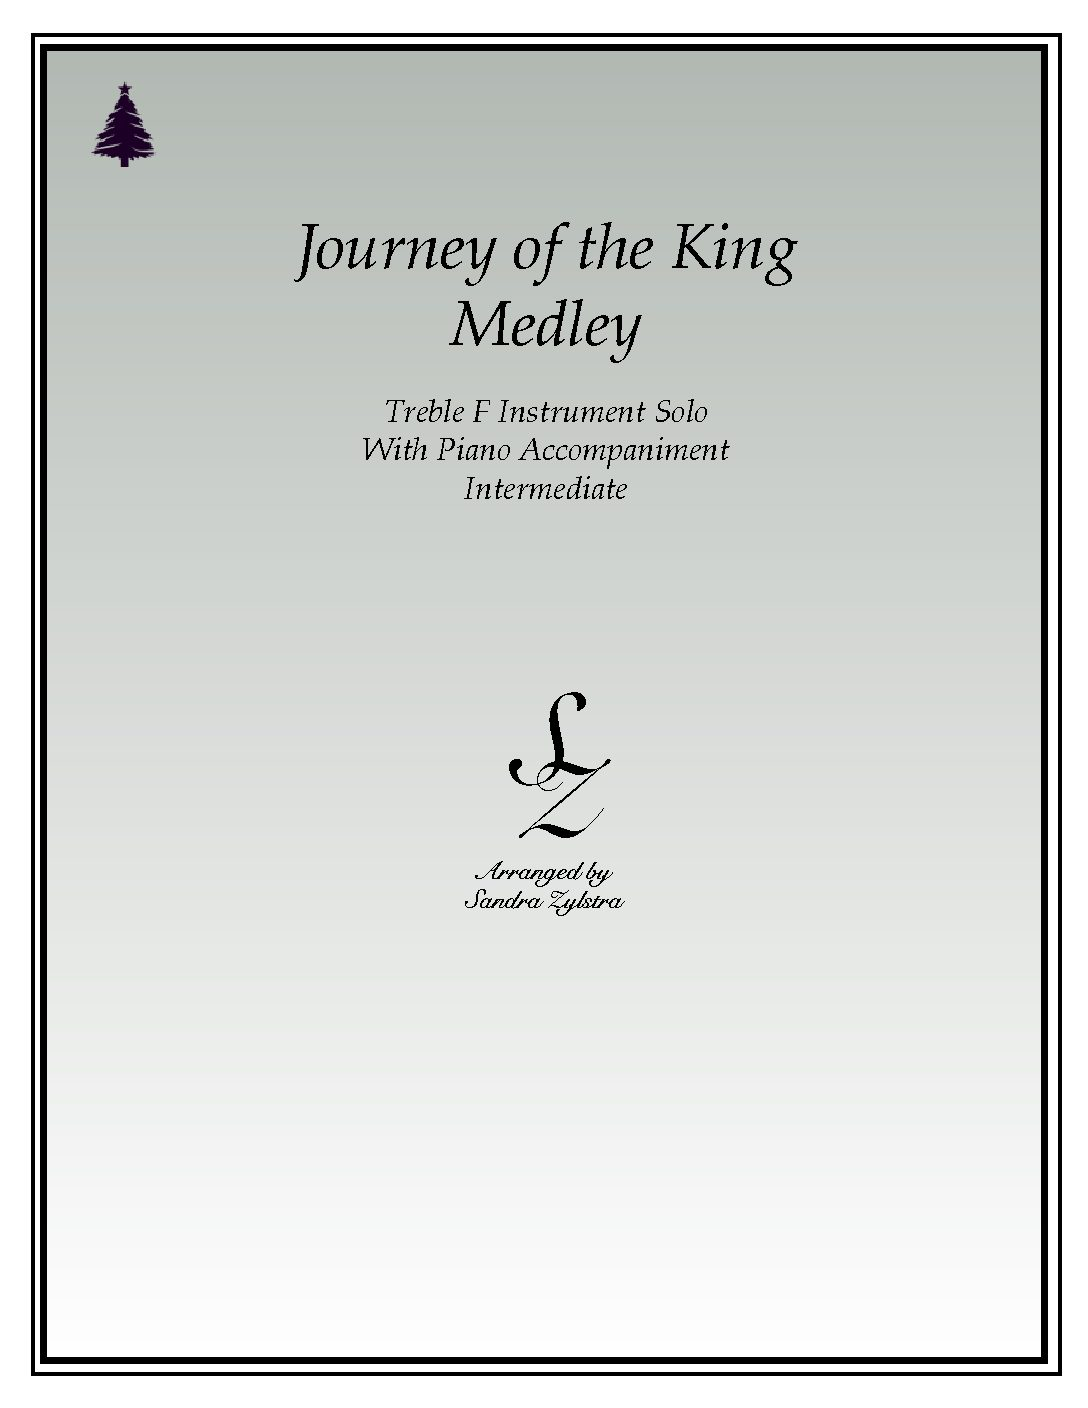 Journey Of The King Medley -Treble F Instrument Solo